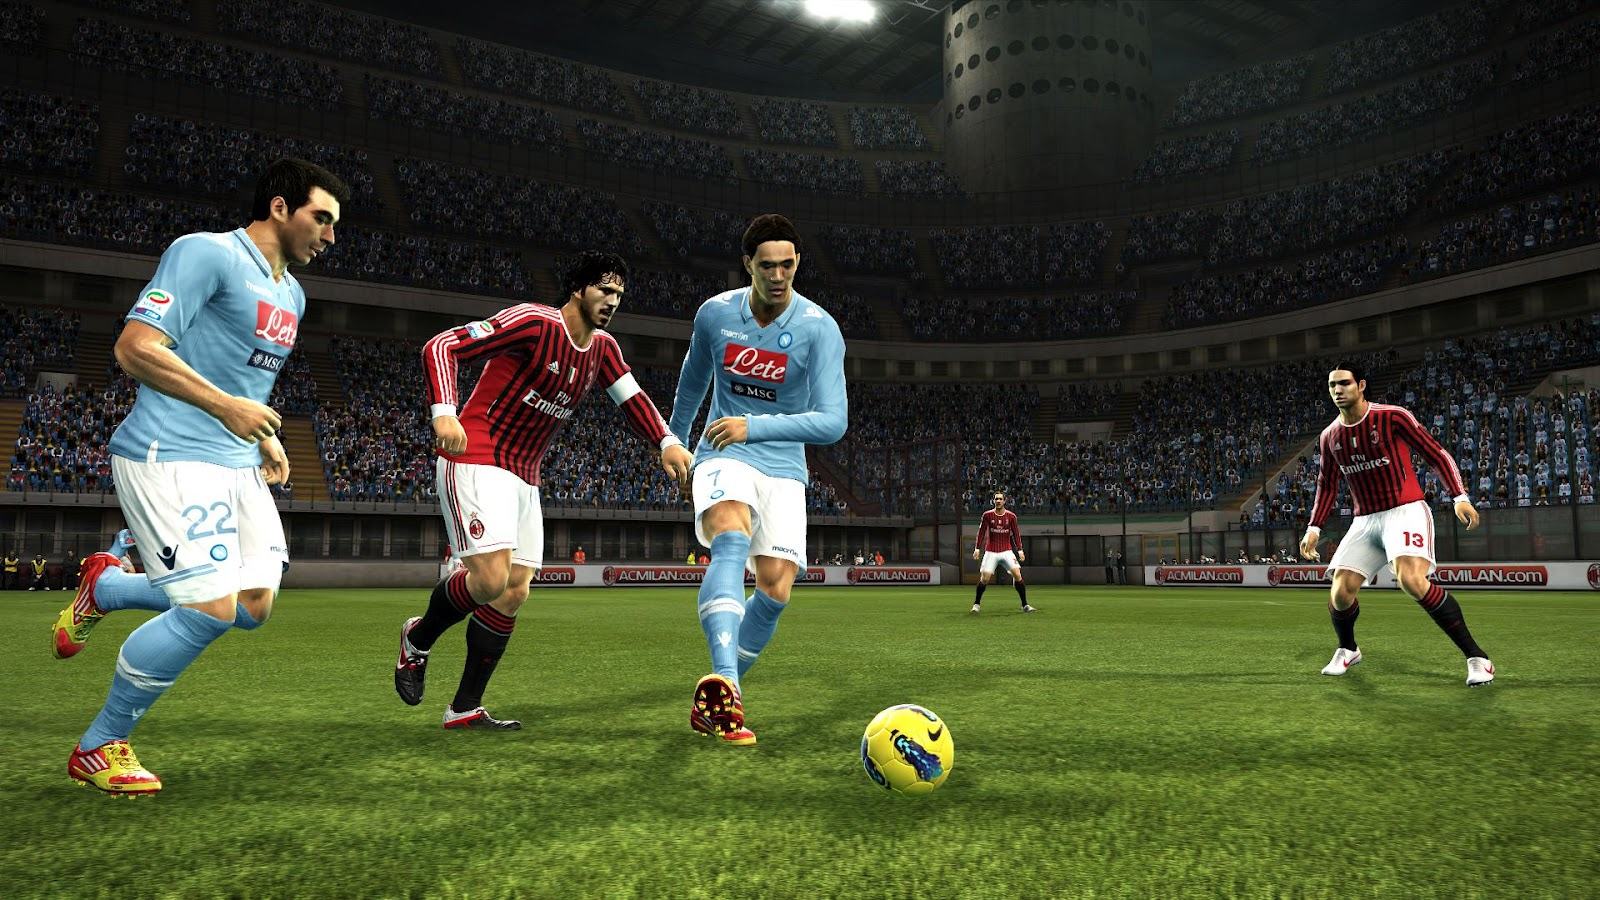 pes20122012 02 0412 07 59 56 - PES 2012 FULL + PESEDIT Patch 2.8 (NEW) MEDIAFIRE